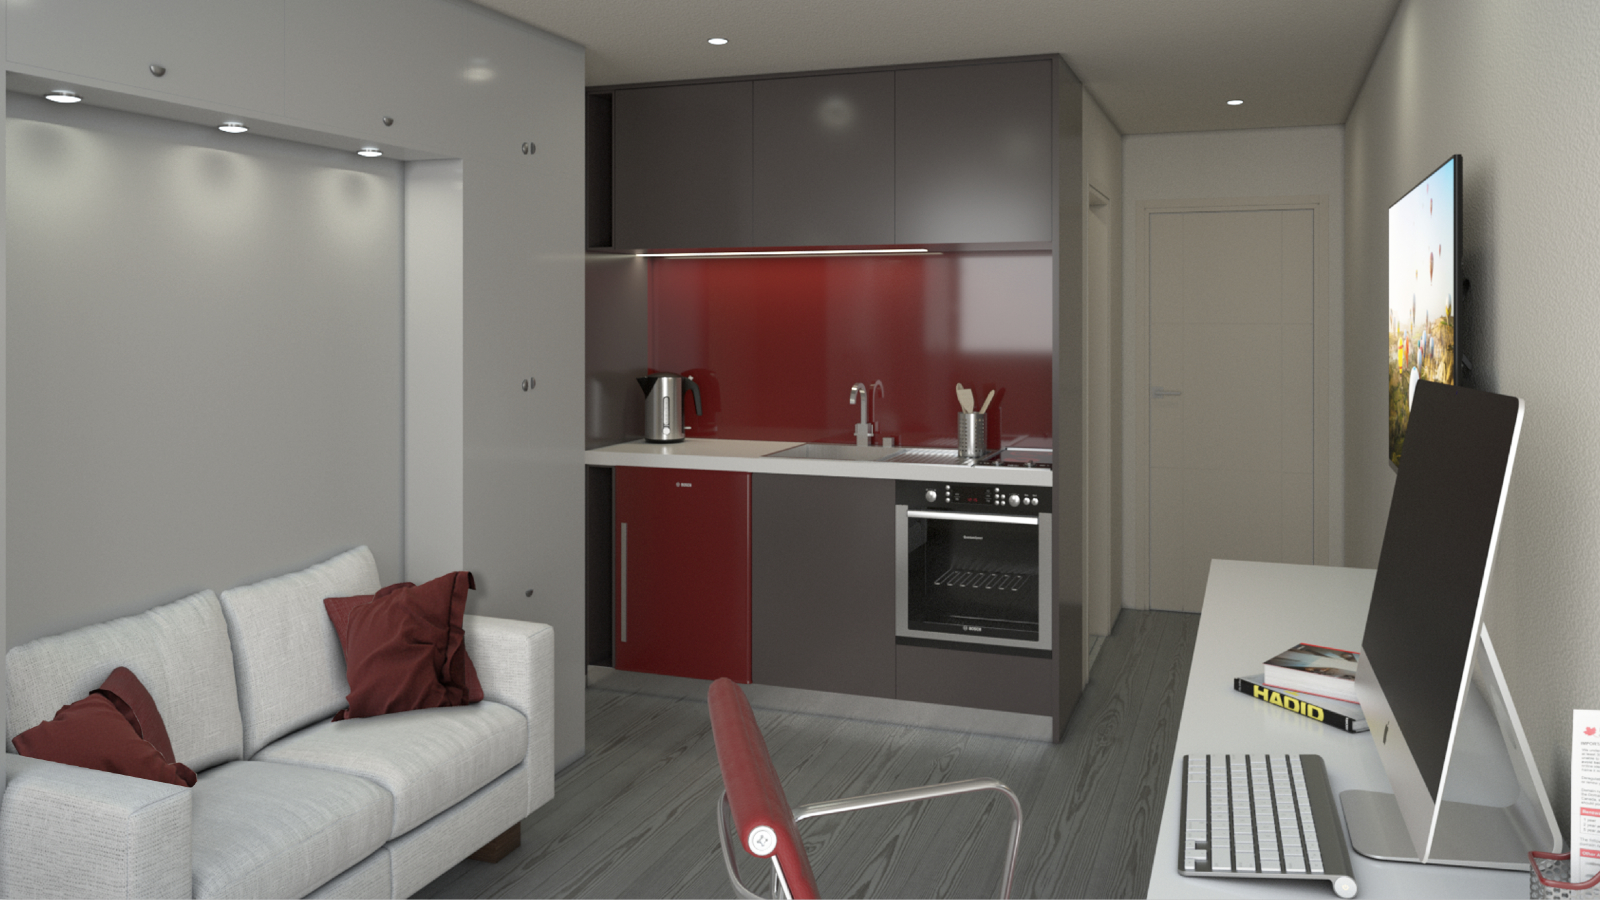 renslade-house-main-living-area-and-kitchenette